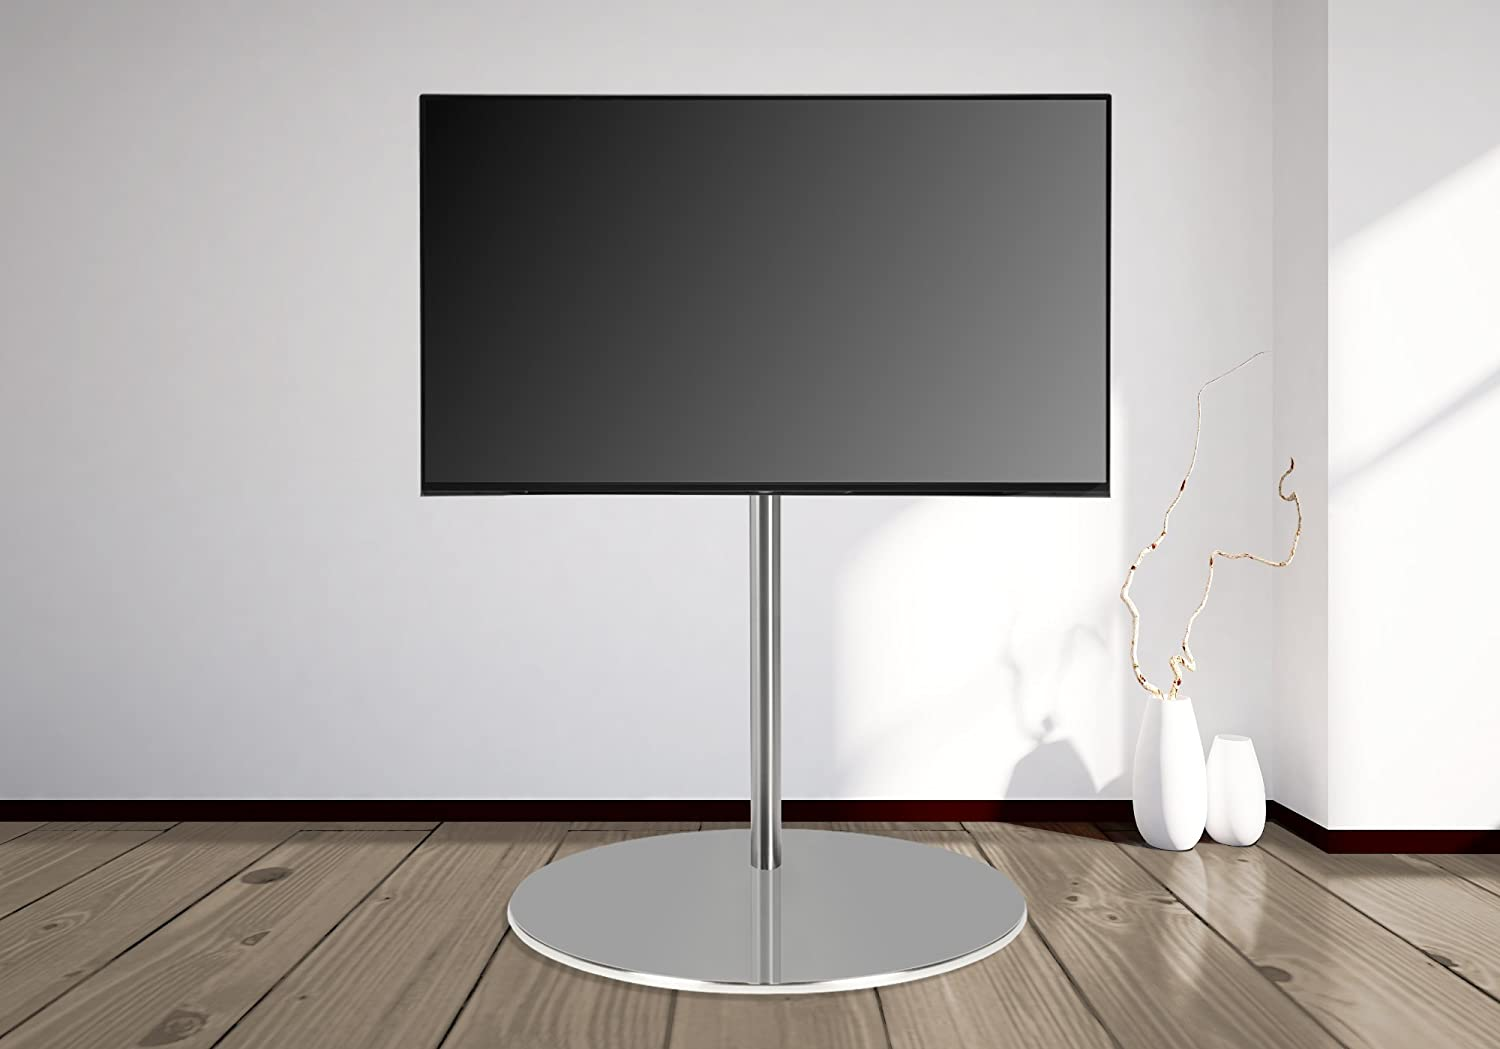 DESIGN TV STÄNDER by Cavus - Ø 70x45cm: Amazon.de: Elektronik